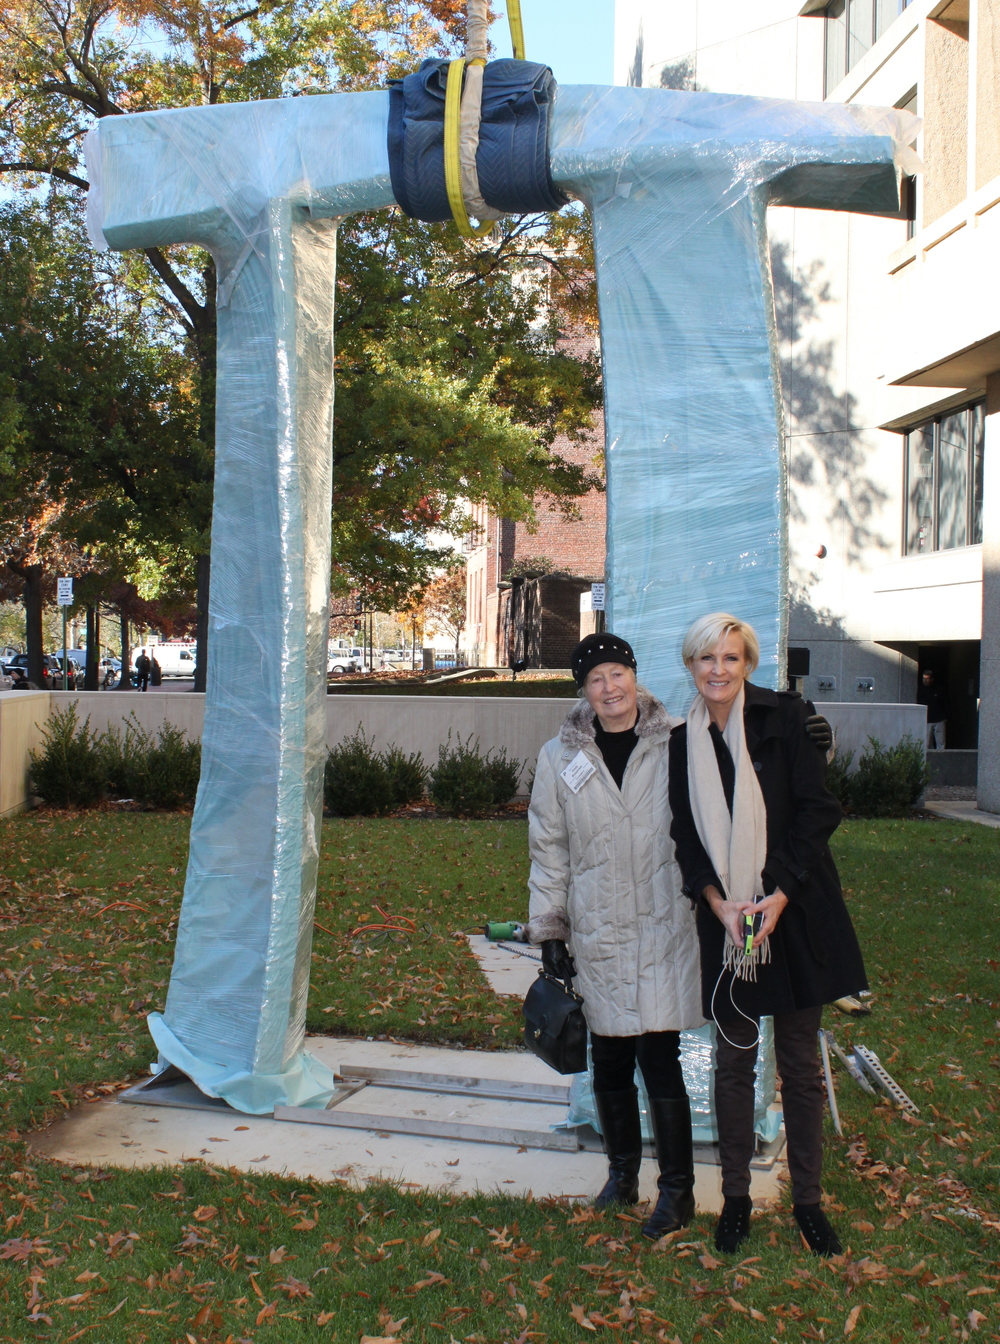 Emilie and Mika Brzezinski pose in front of Arch in Flight before it is unwrapped.